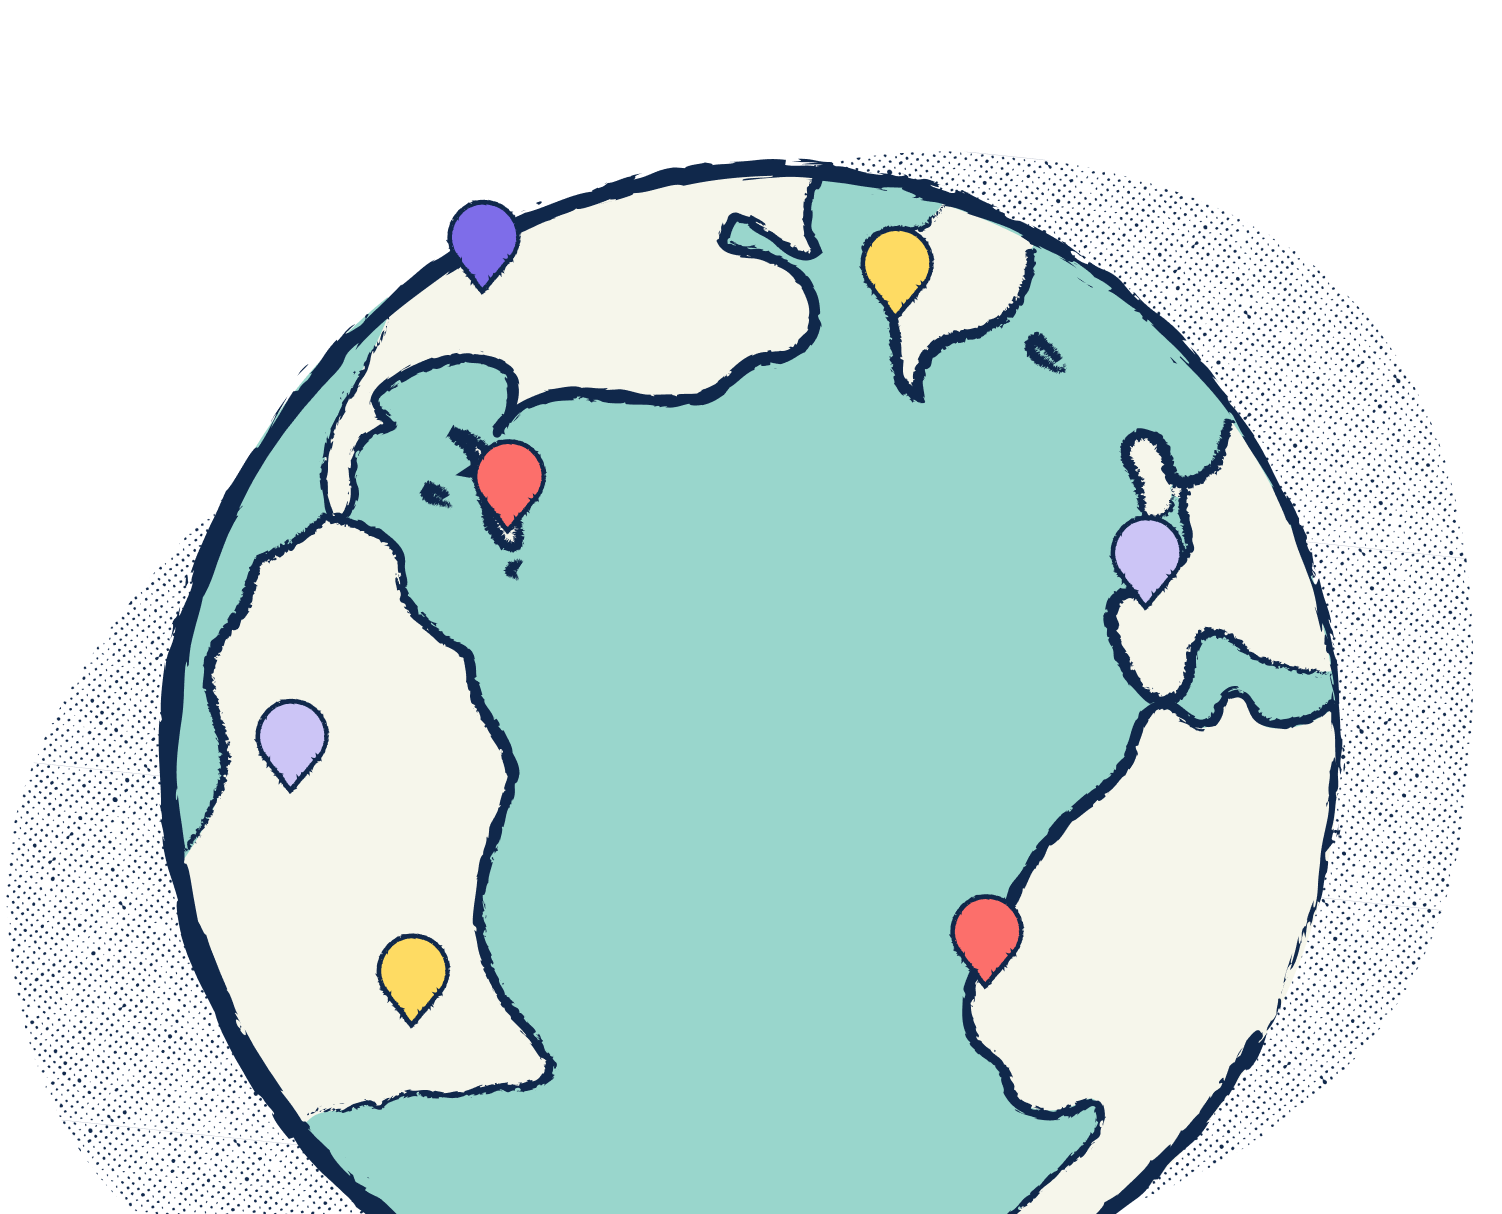 Stylized illustration of a globe with GPS markers on various countries